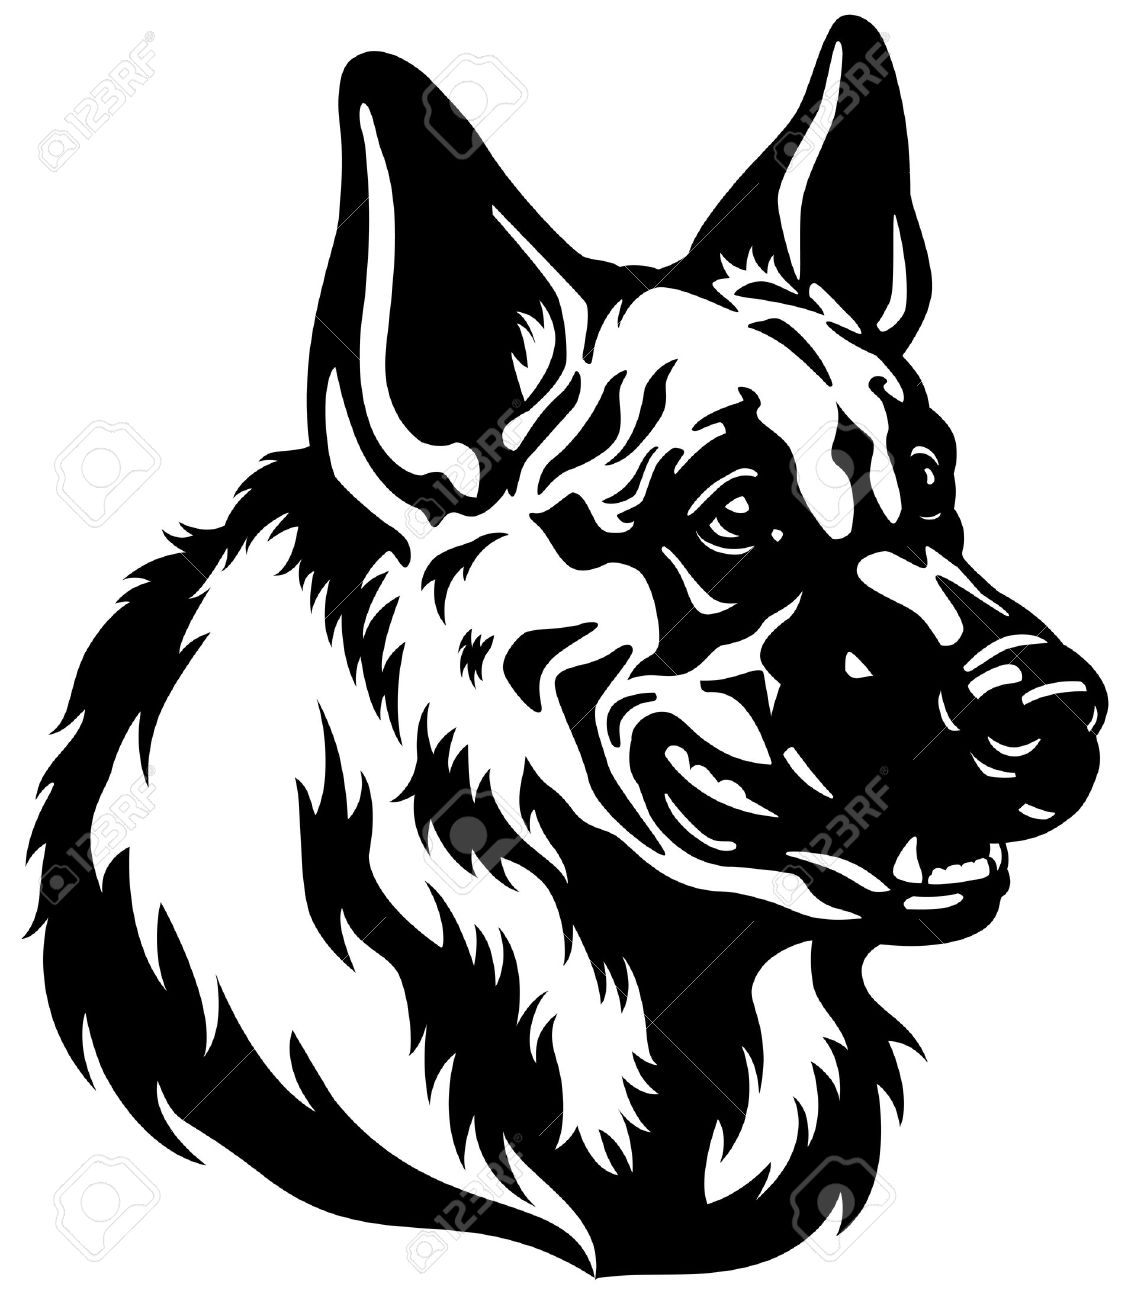 Black and brown shepherd dog clipart.